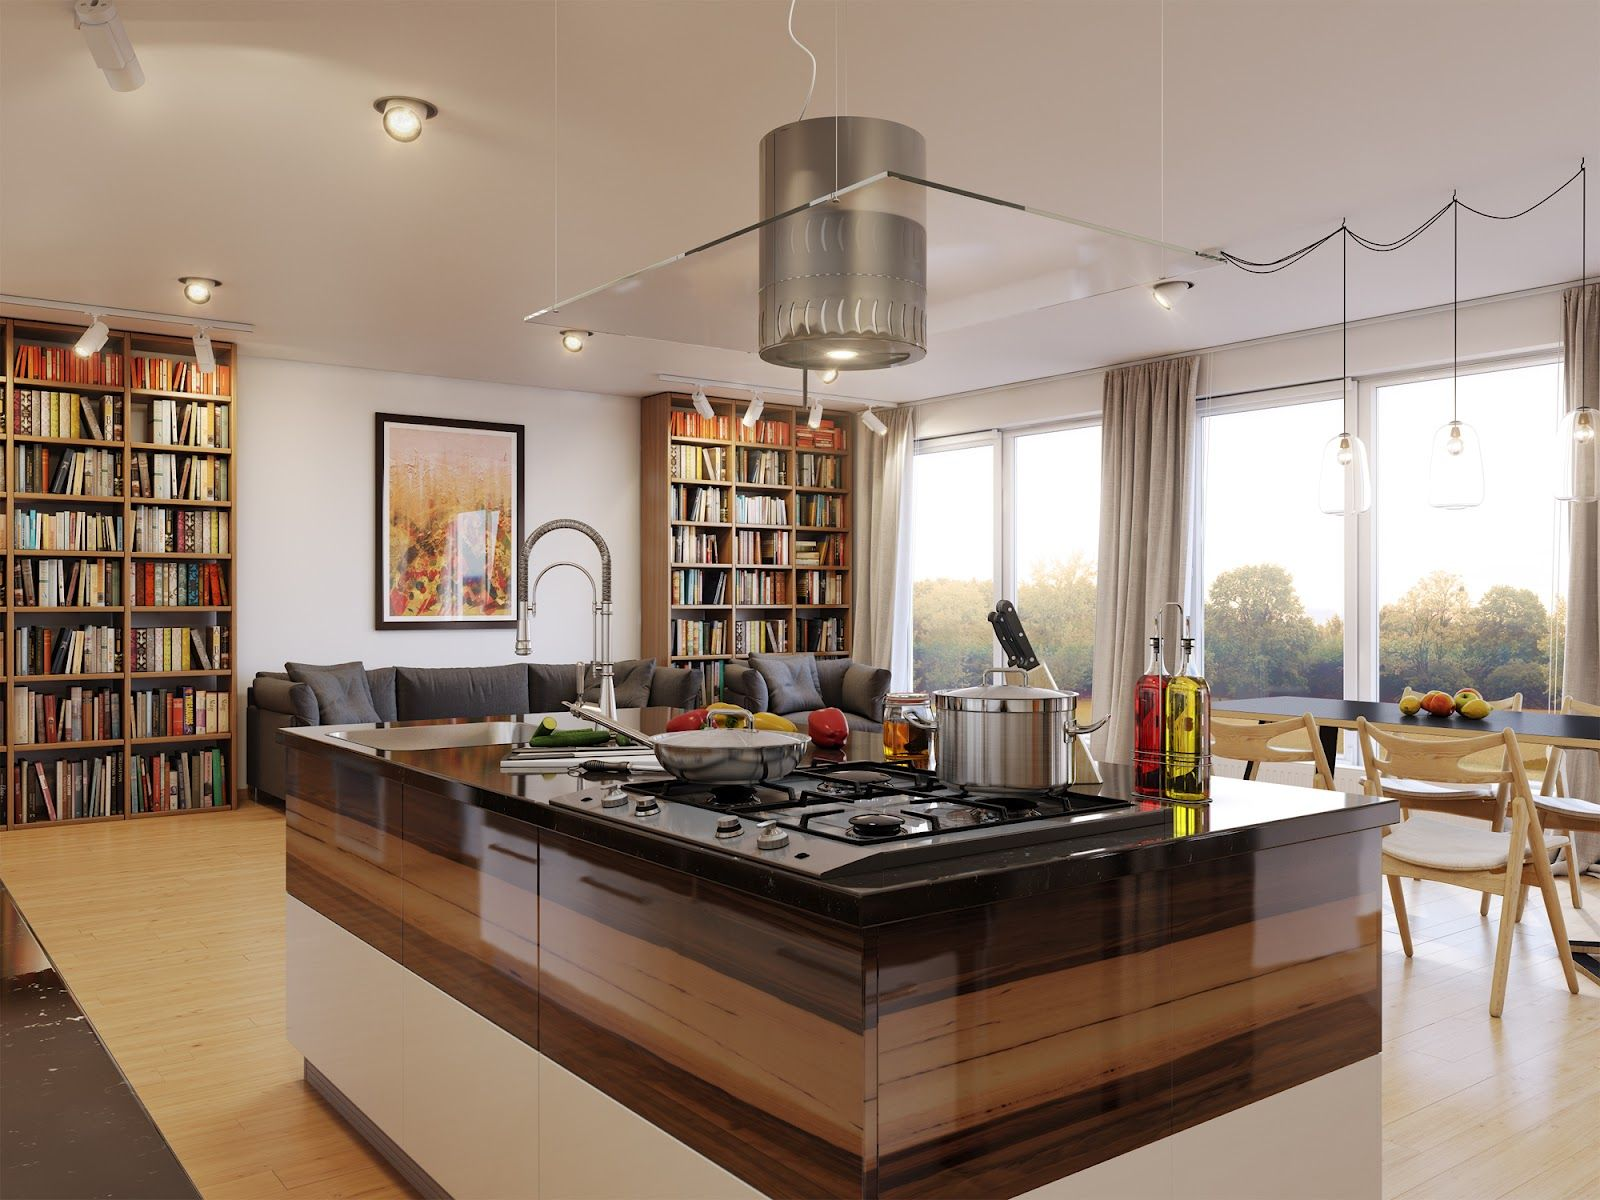 Captivating White Brown Kitchen/library Scheme By Dmitry Kobtsev On Home Designing.com Part 13